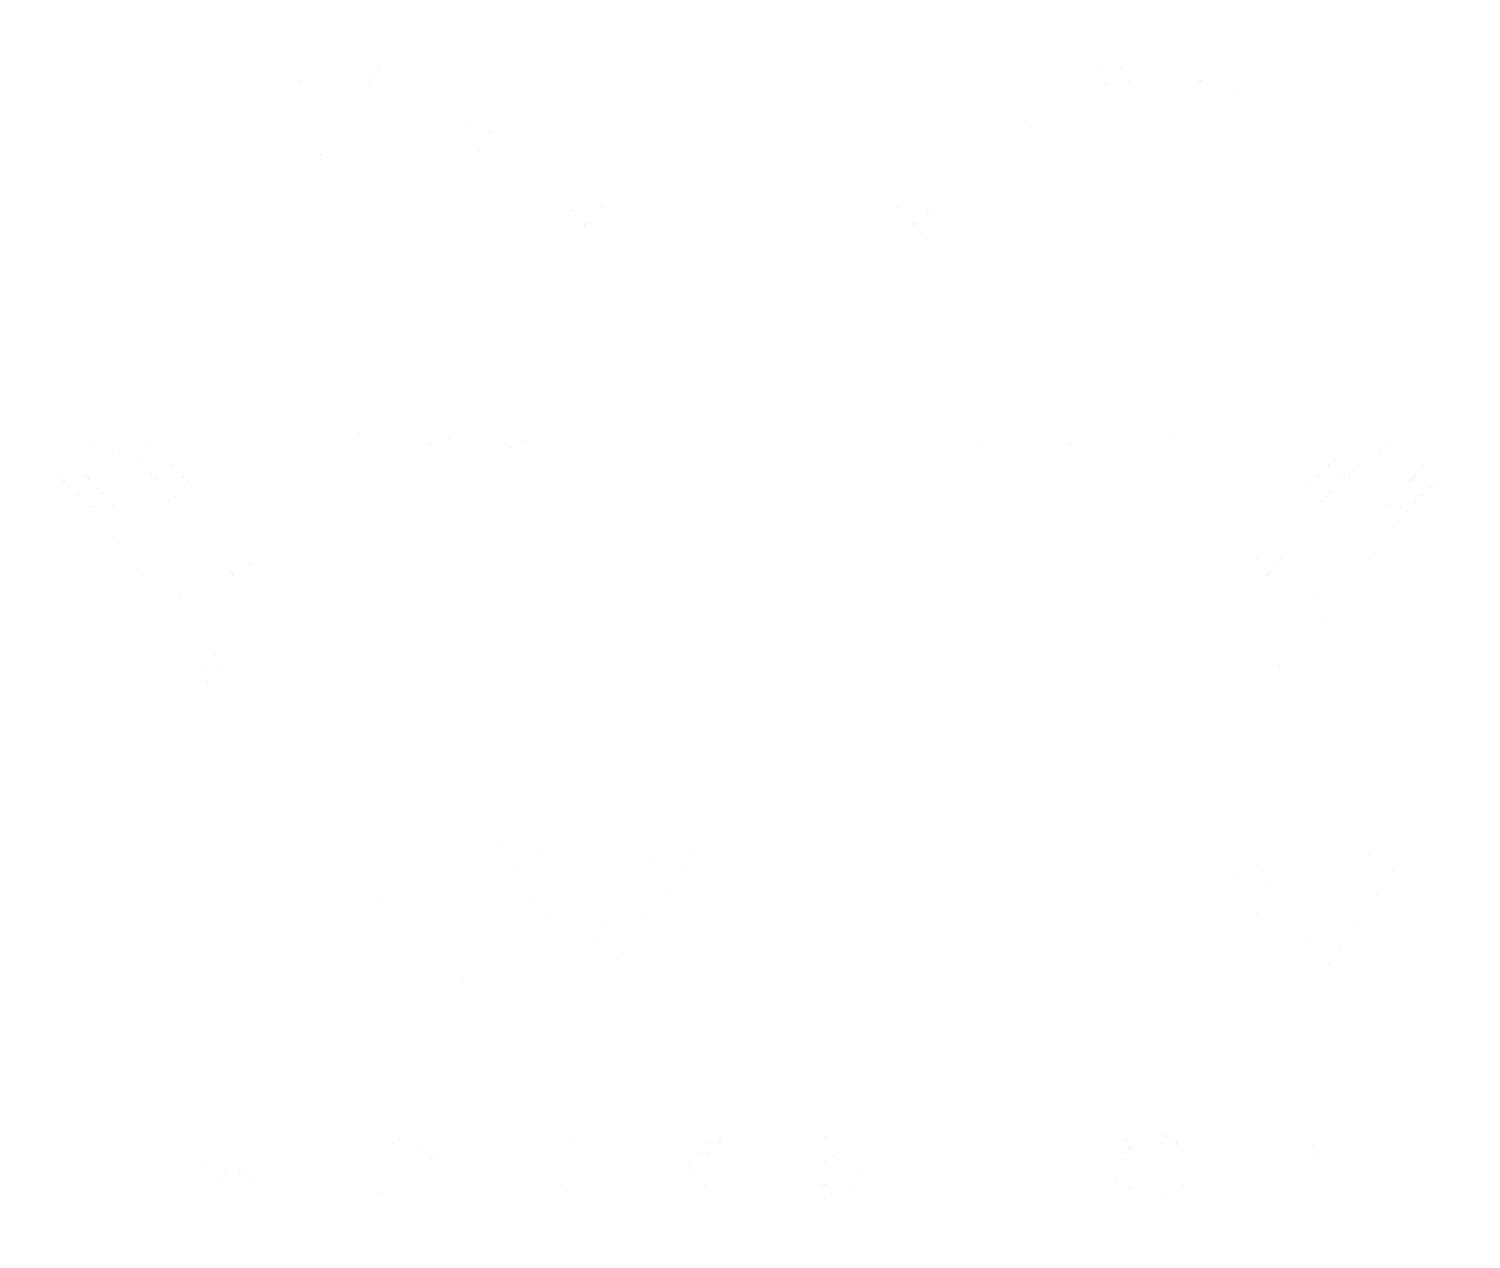 TAY TAY WORKSHOP